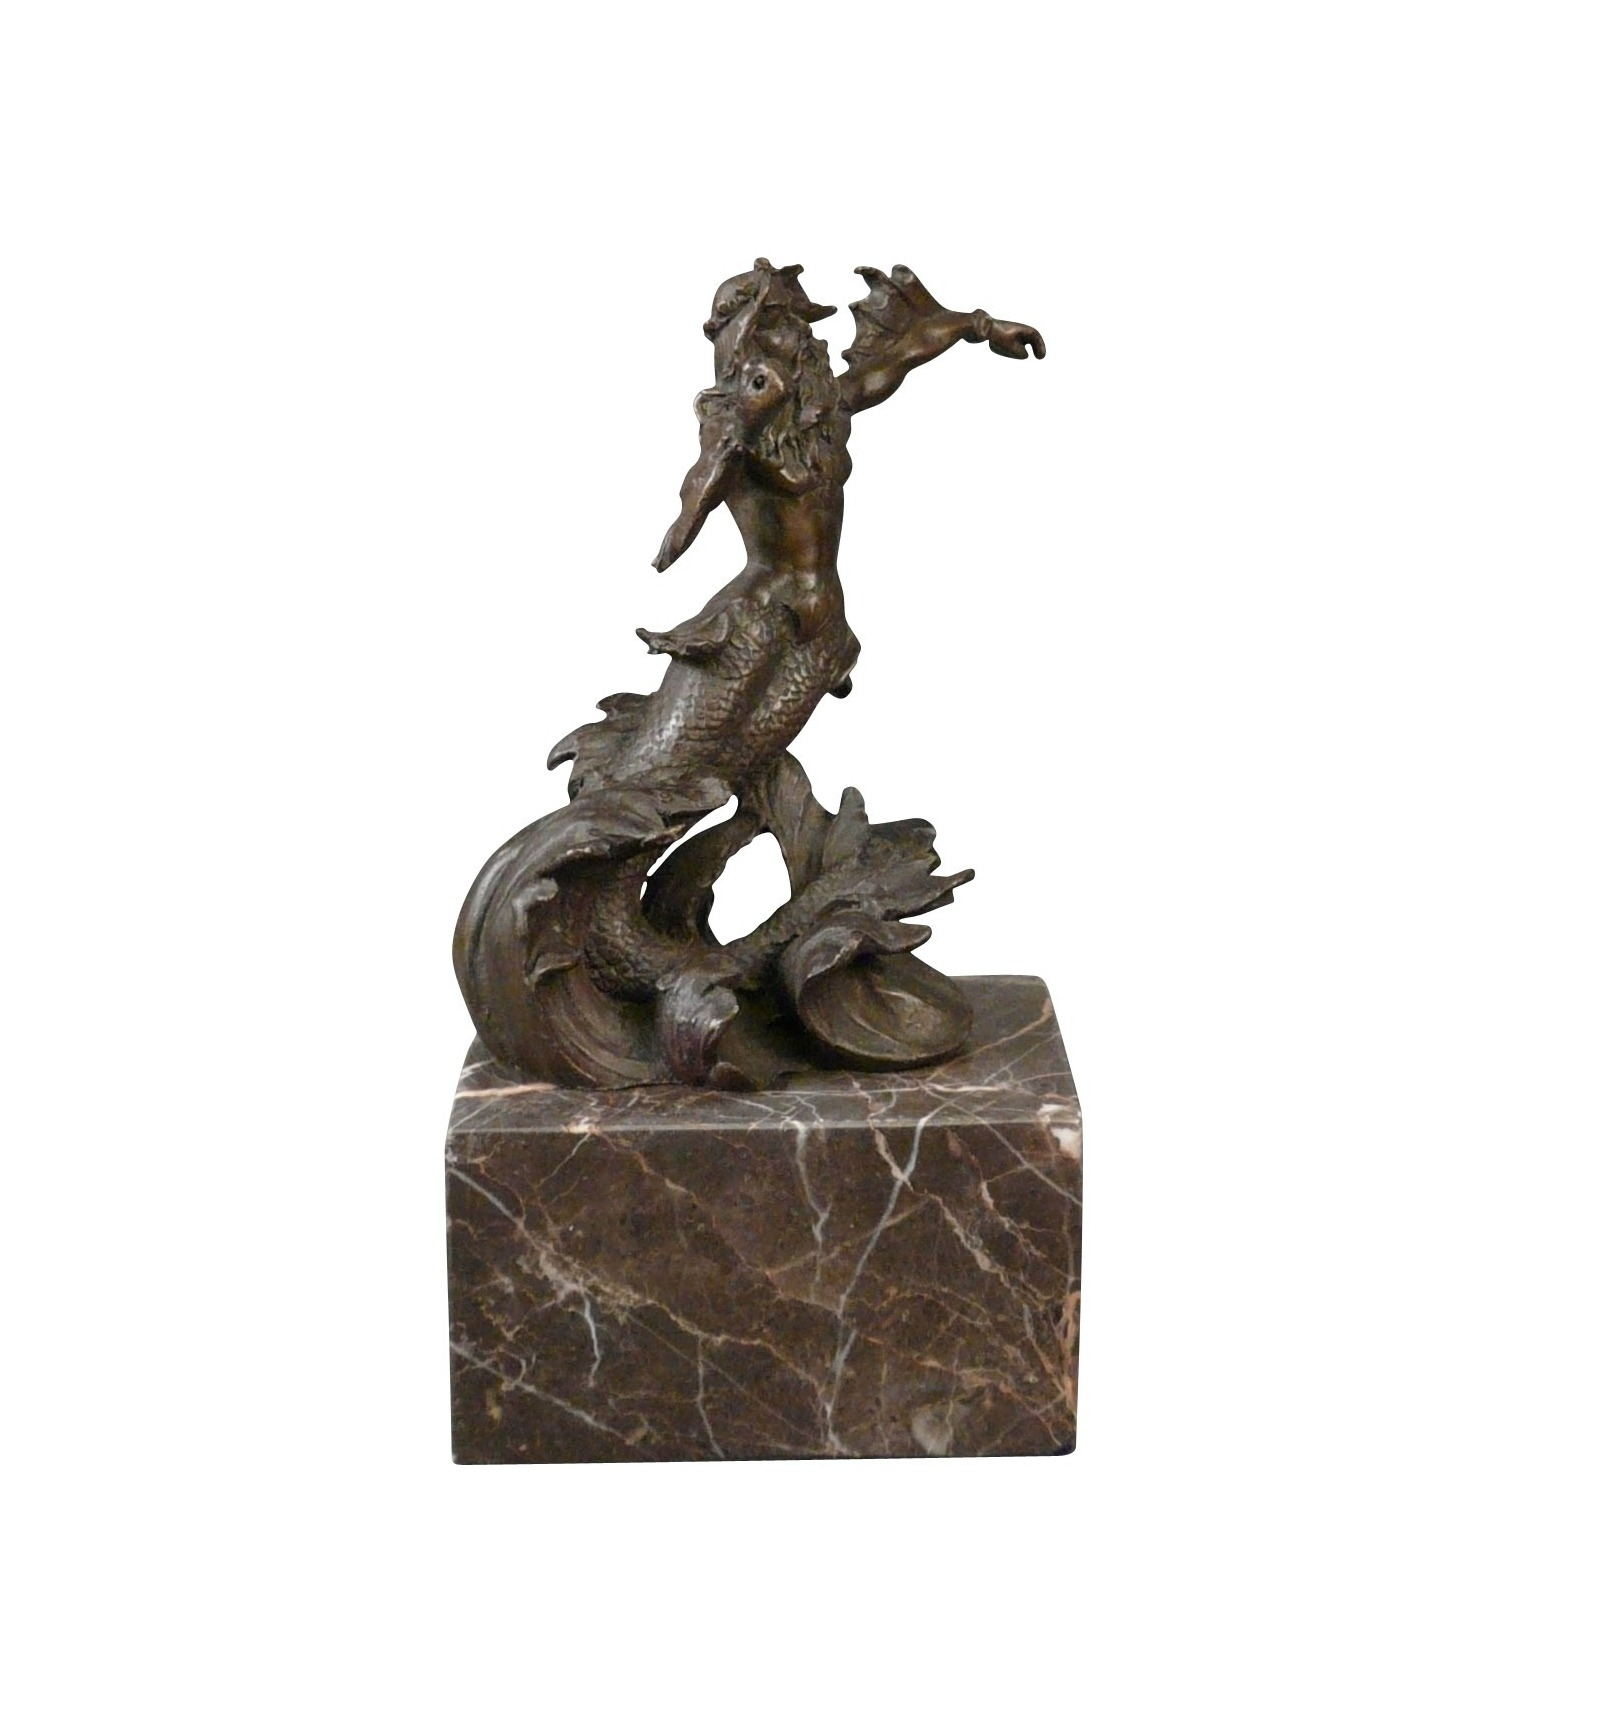 Bronze statue of poseidon neptune greek mythology - Poseidon statue greece ...